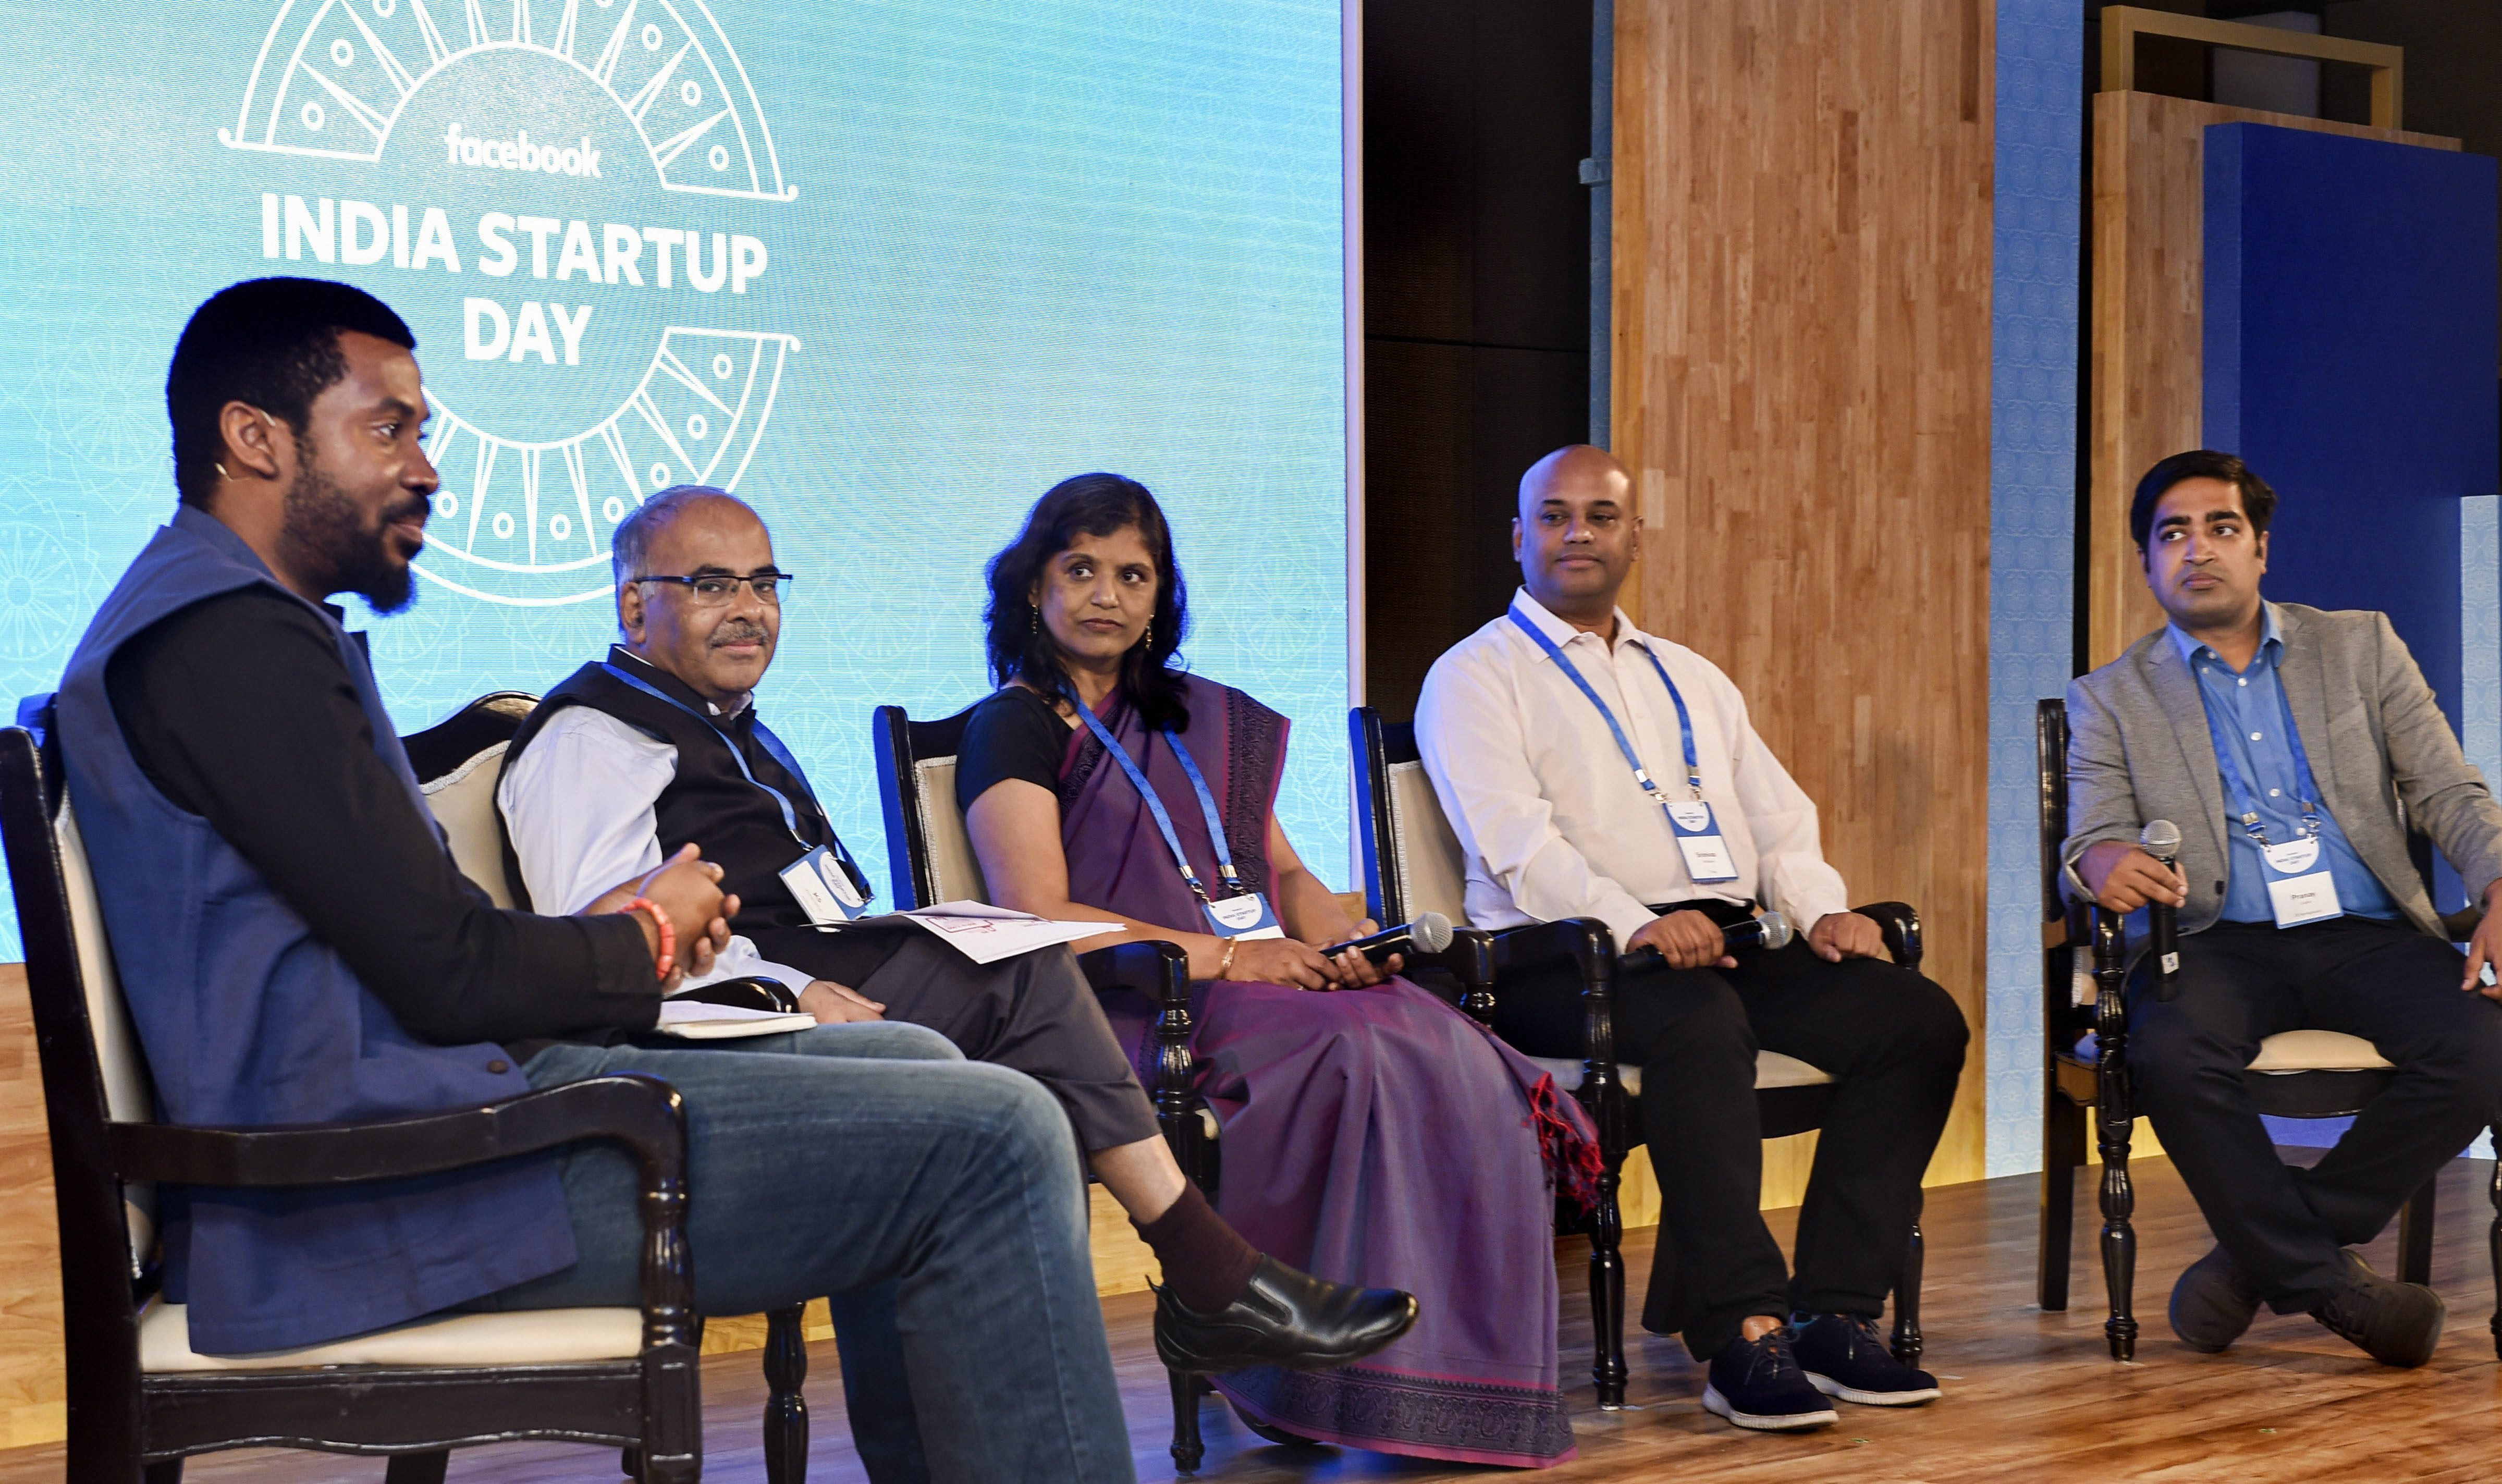 Facebook Head of Developer Programs Emeka Afigbo (L) and Nasscom Vice President (Industry Initiative) KS Viswanathan (2nd L) at the India Startup Day function, in New Delhi - PTI